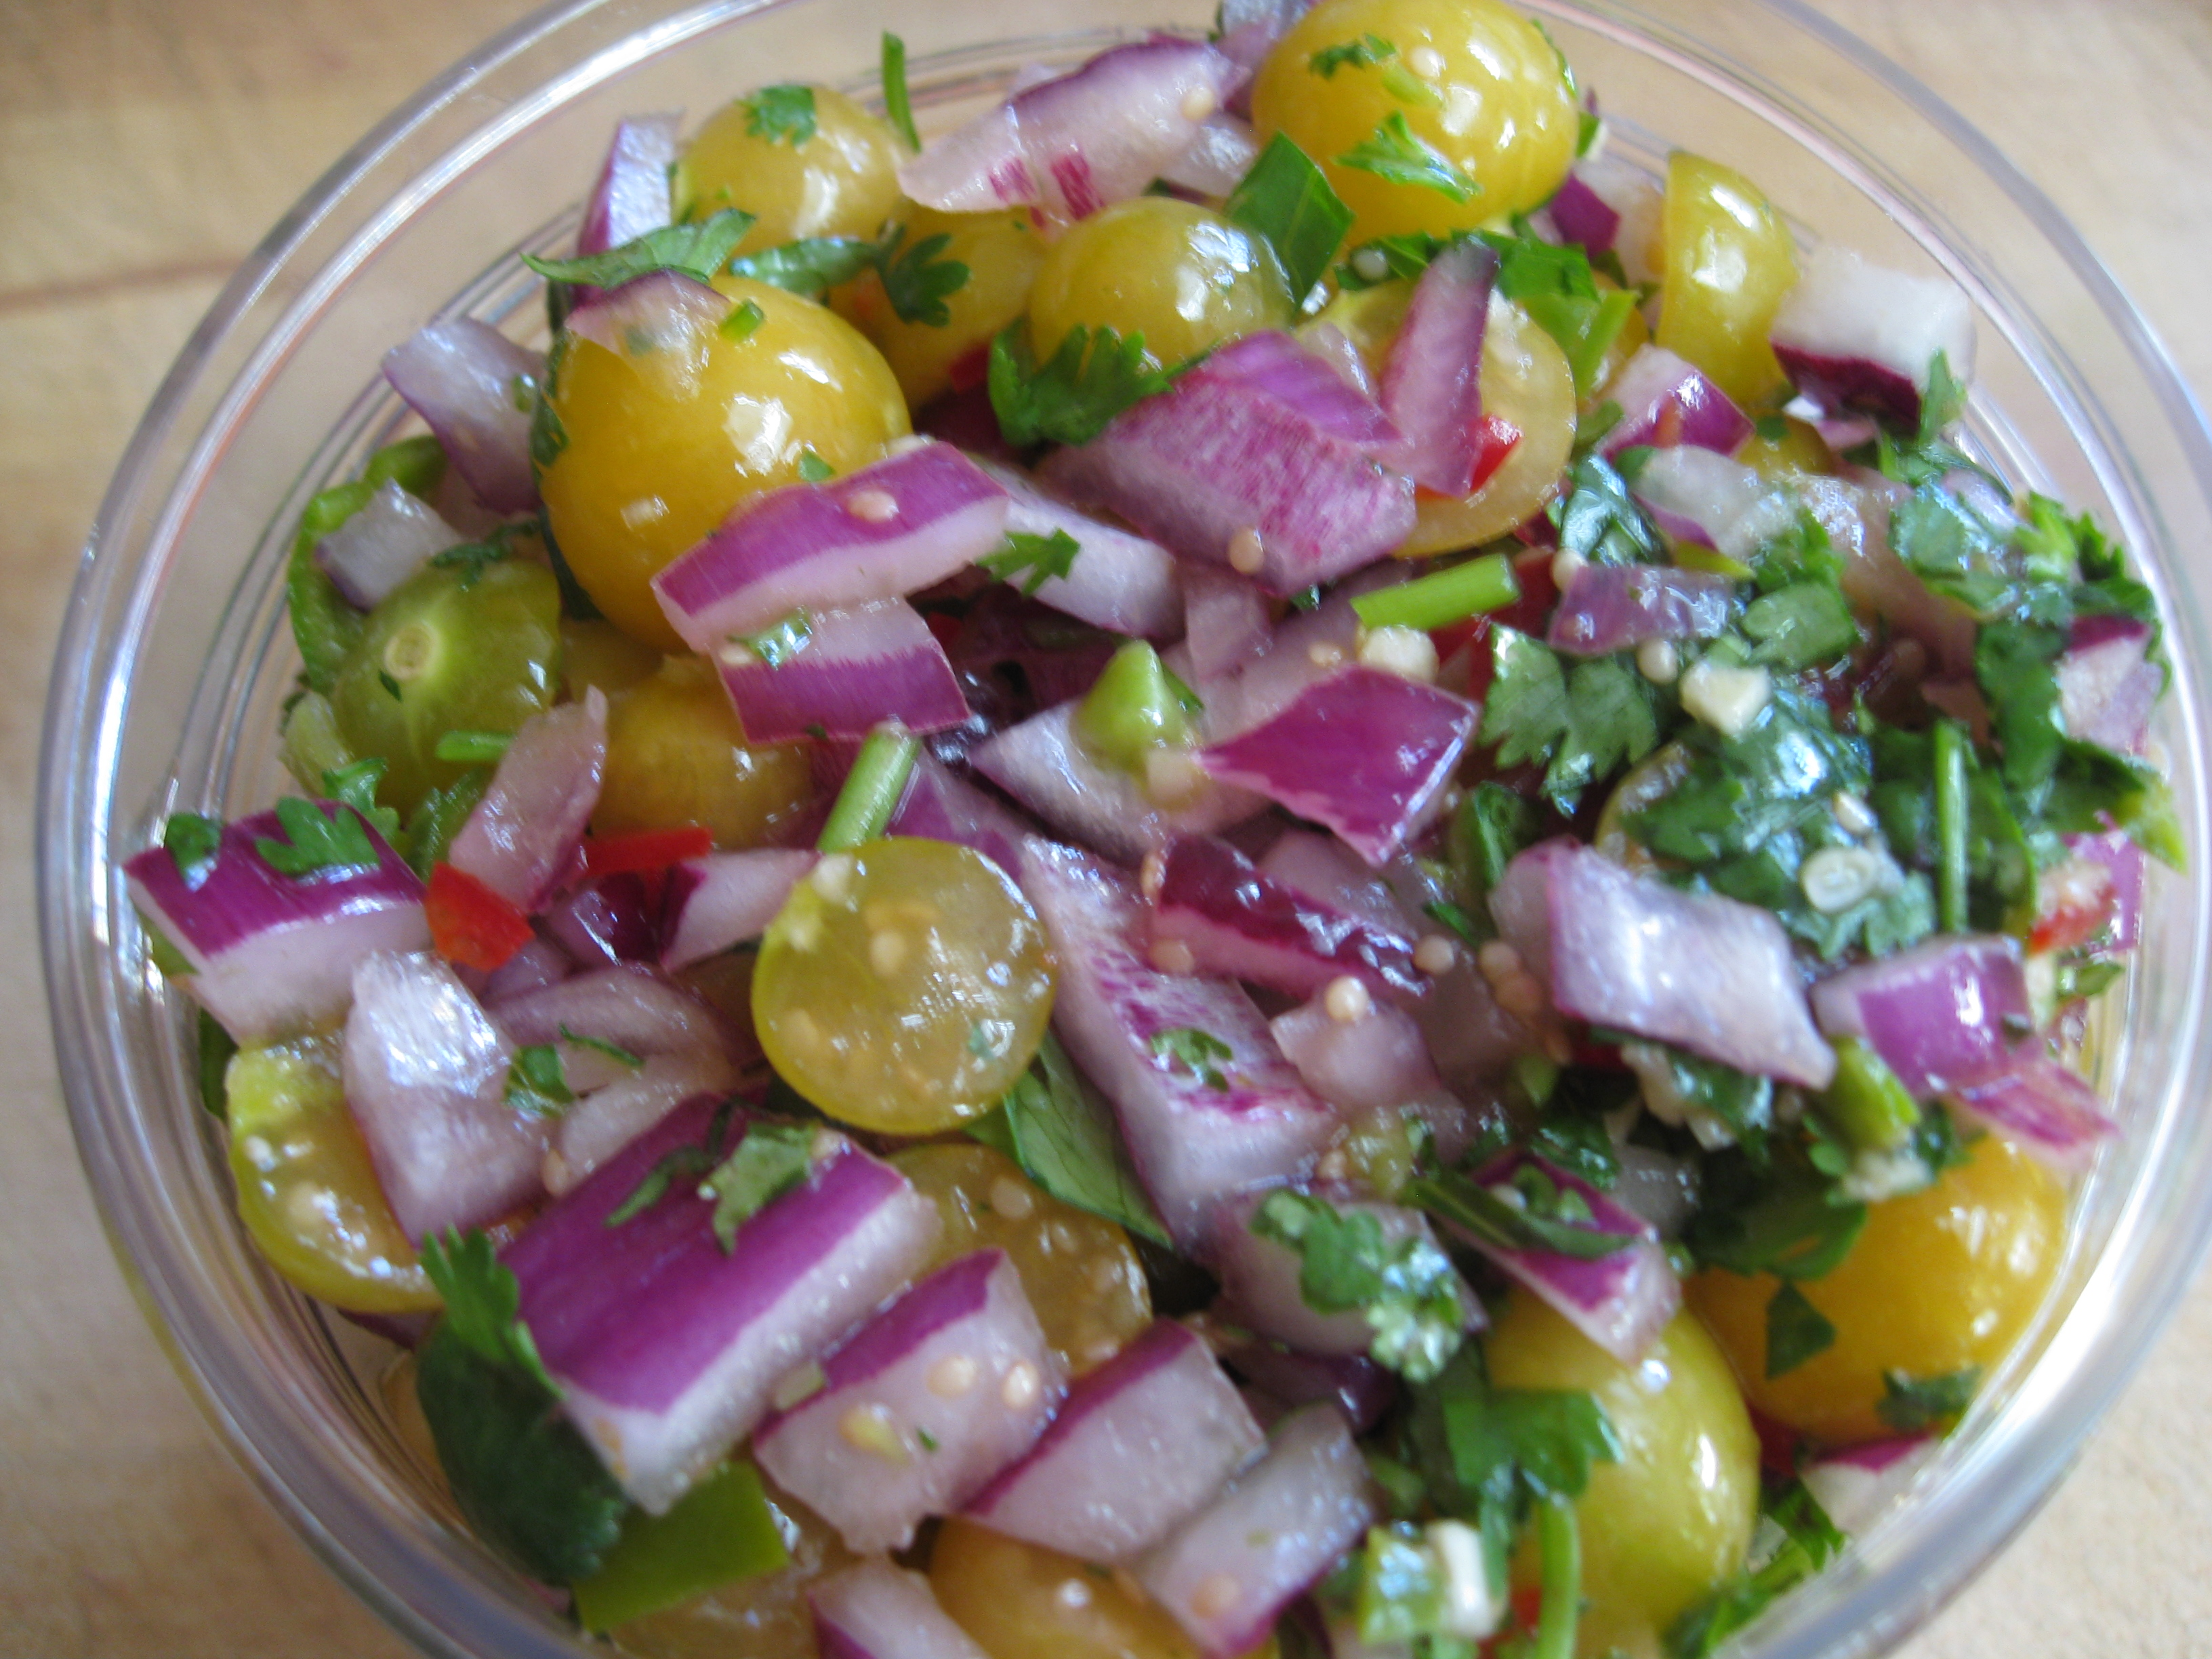 Beautiful colors and tropical flavors greet you with this salsa.